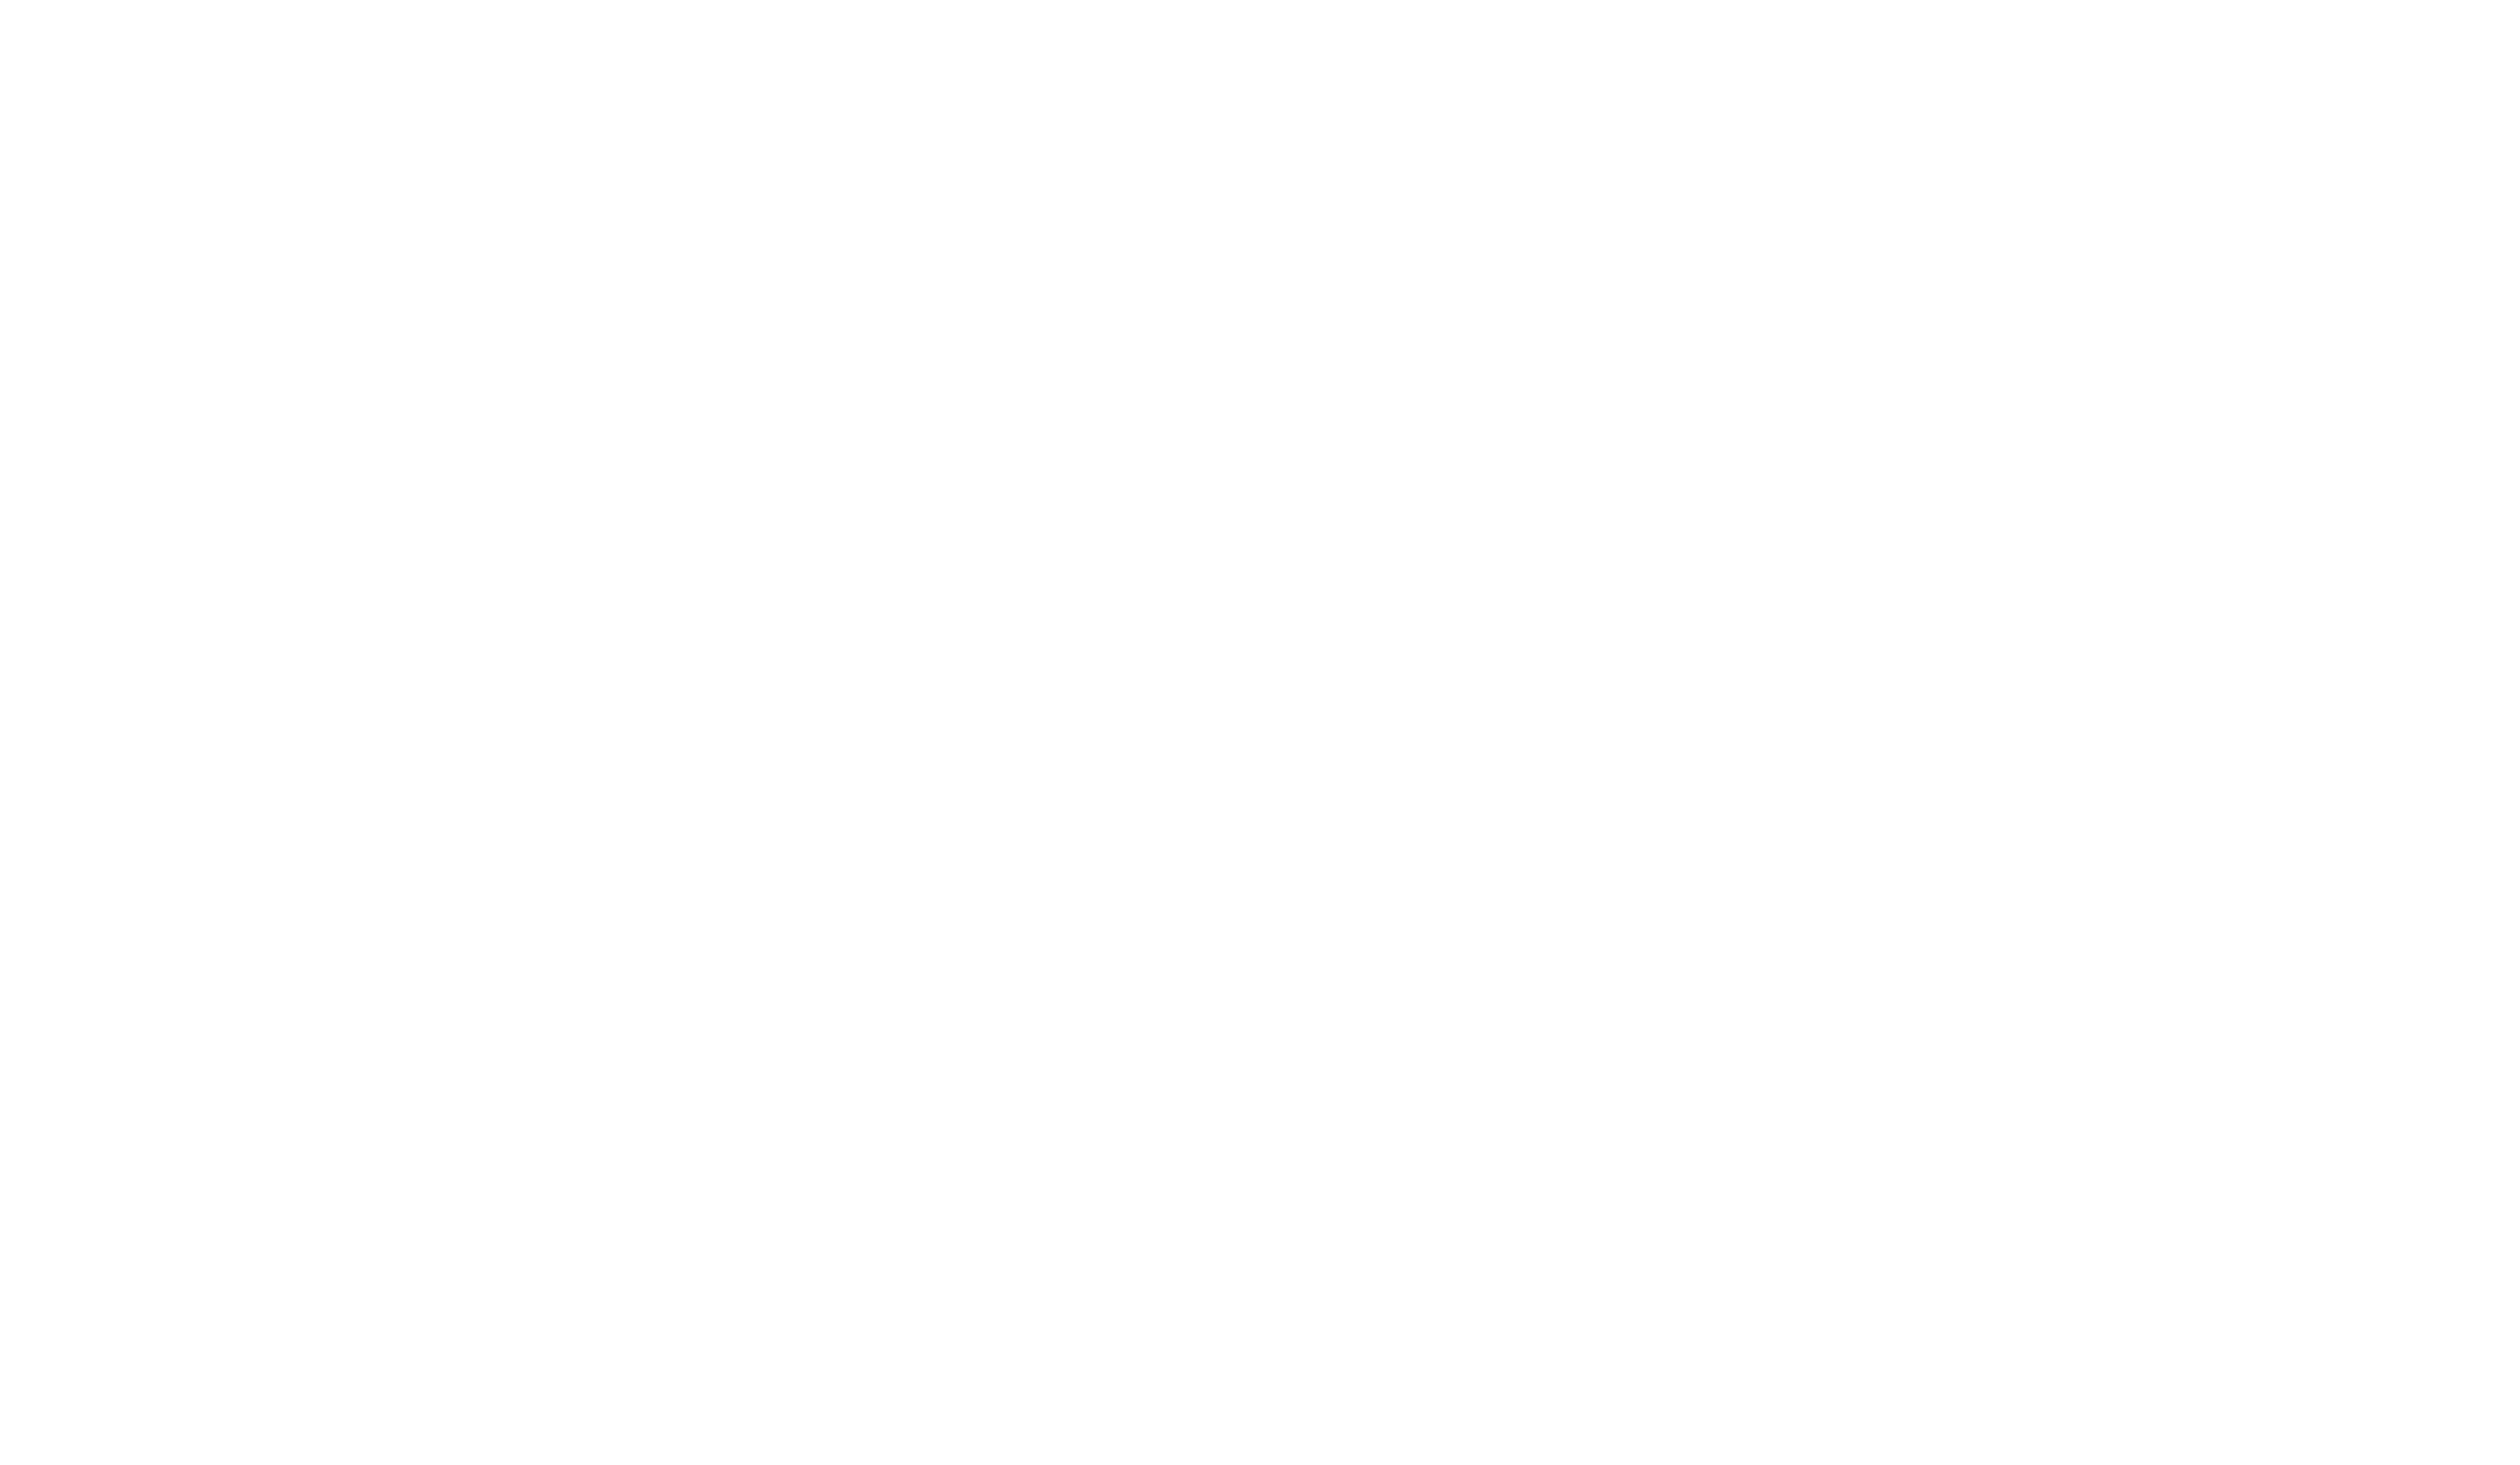 Pubg honeycomb png. Free icon download melee